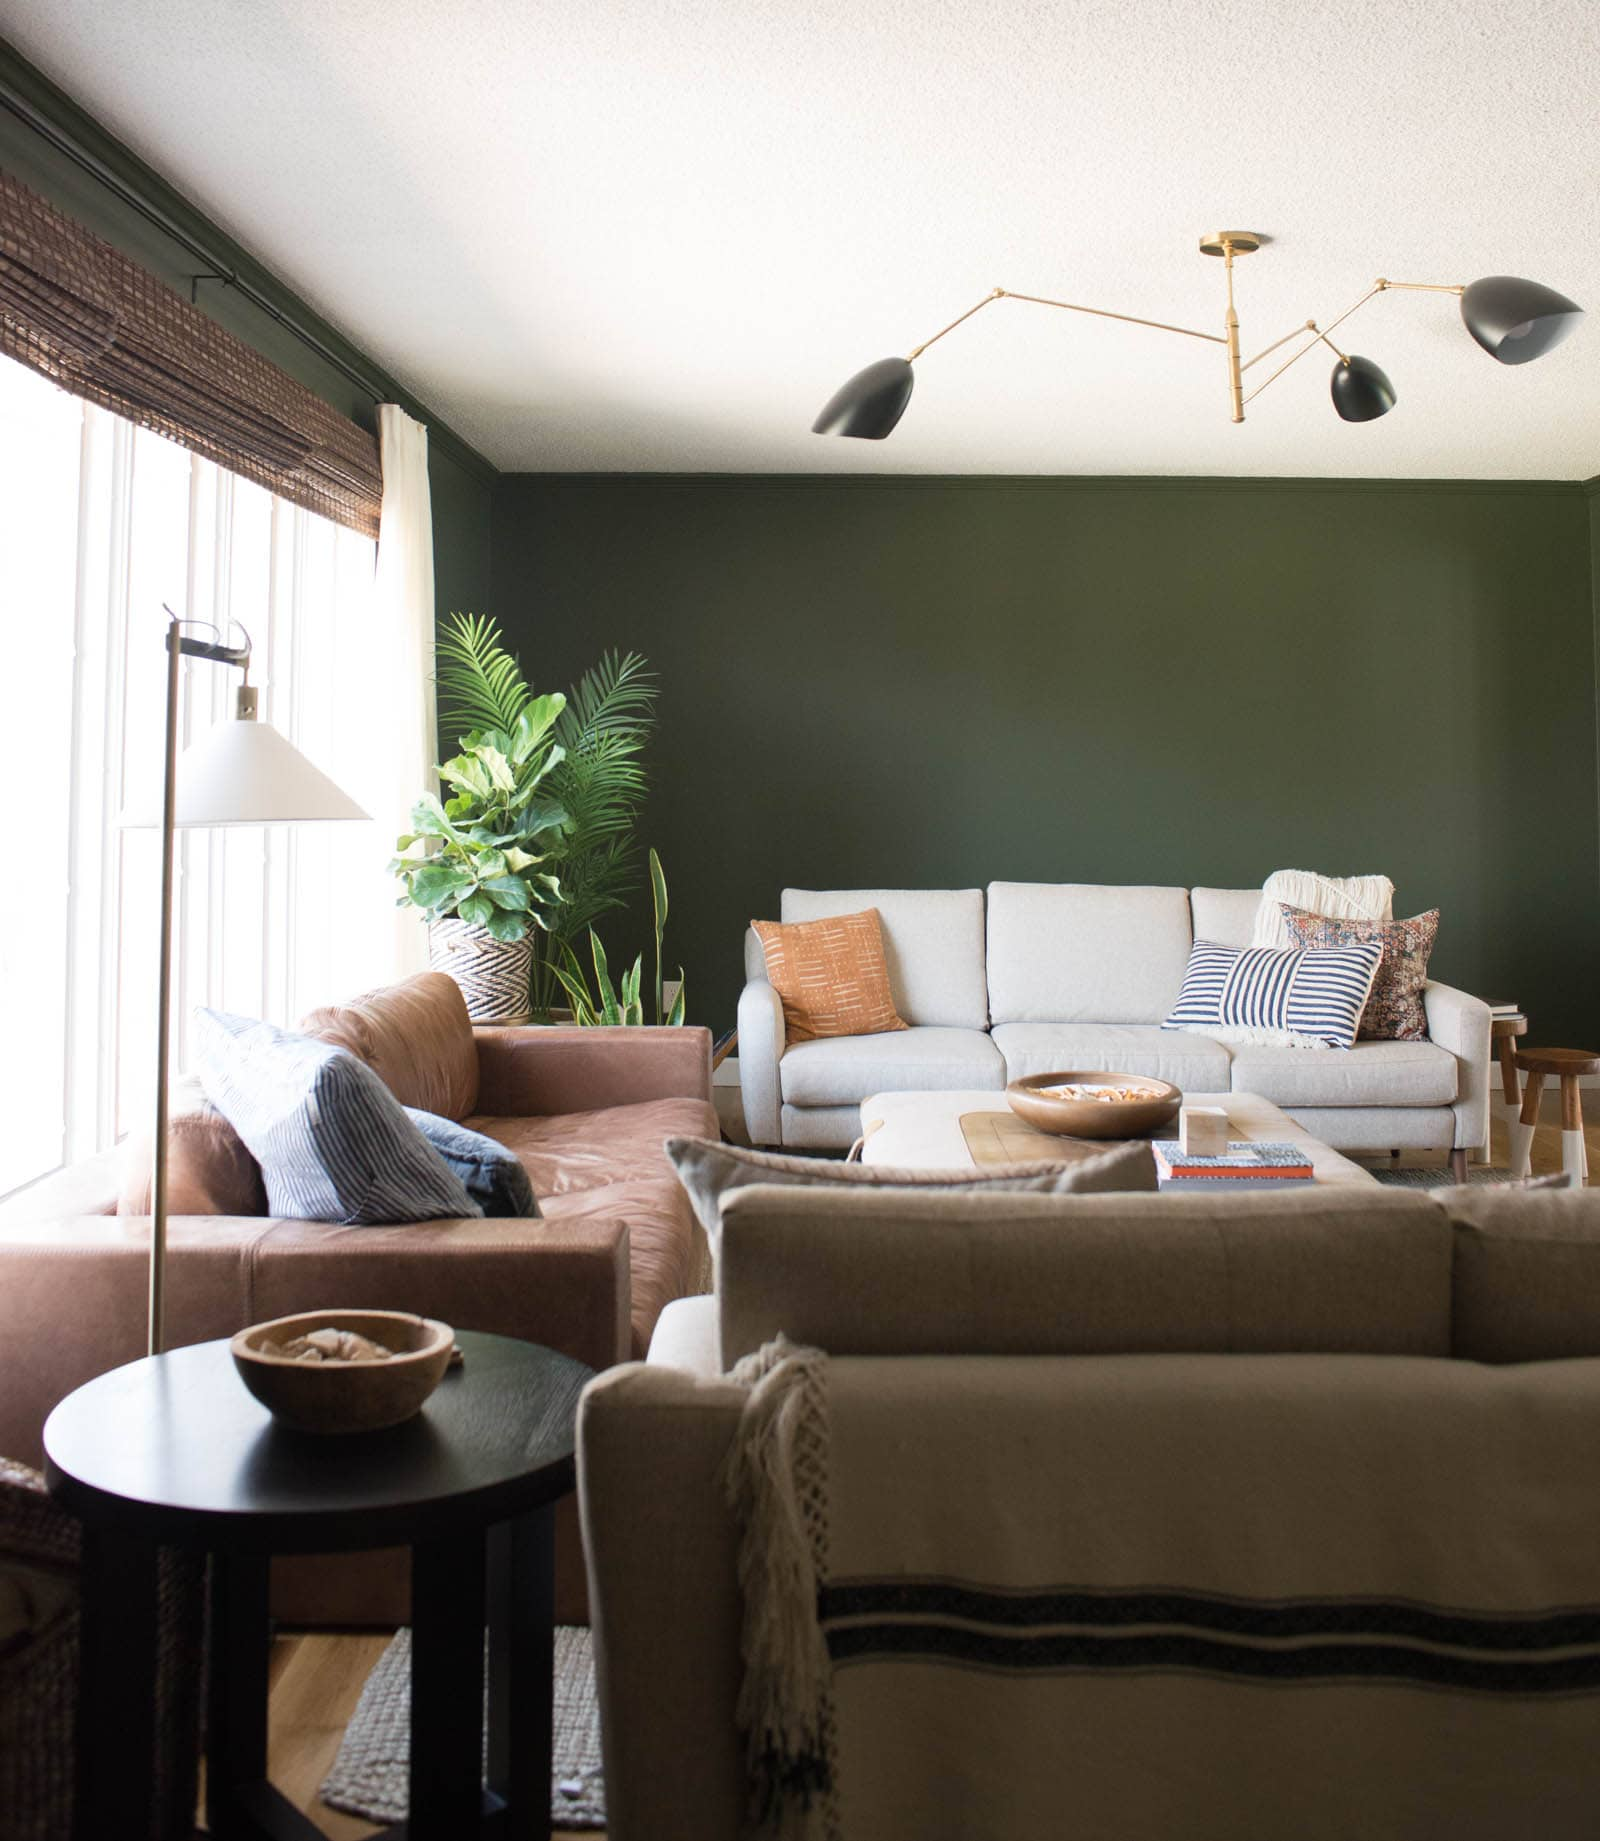 Green living room with bamboo shades